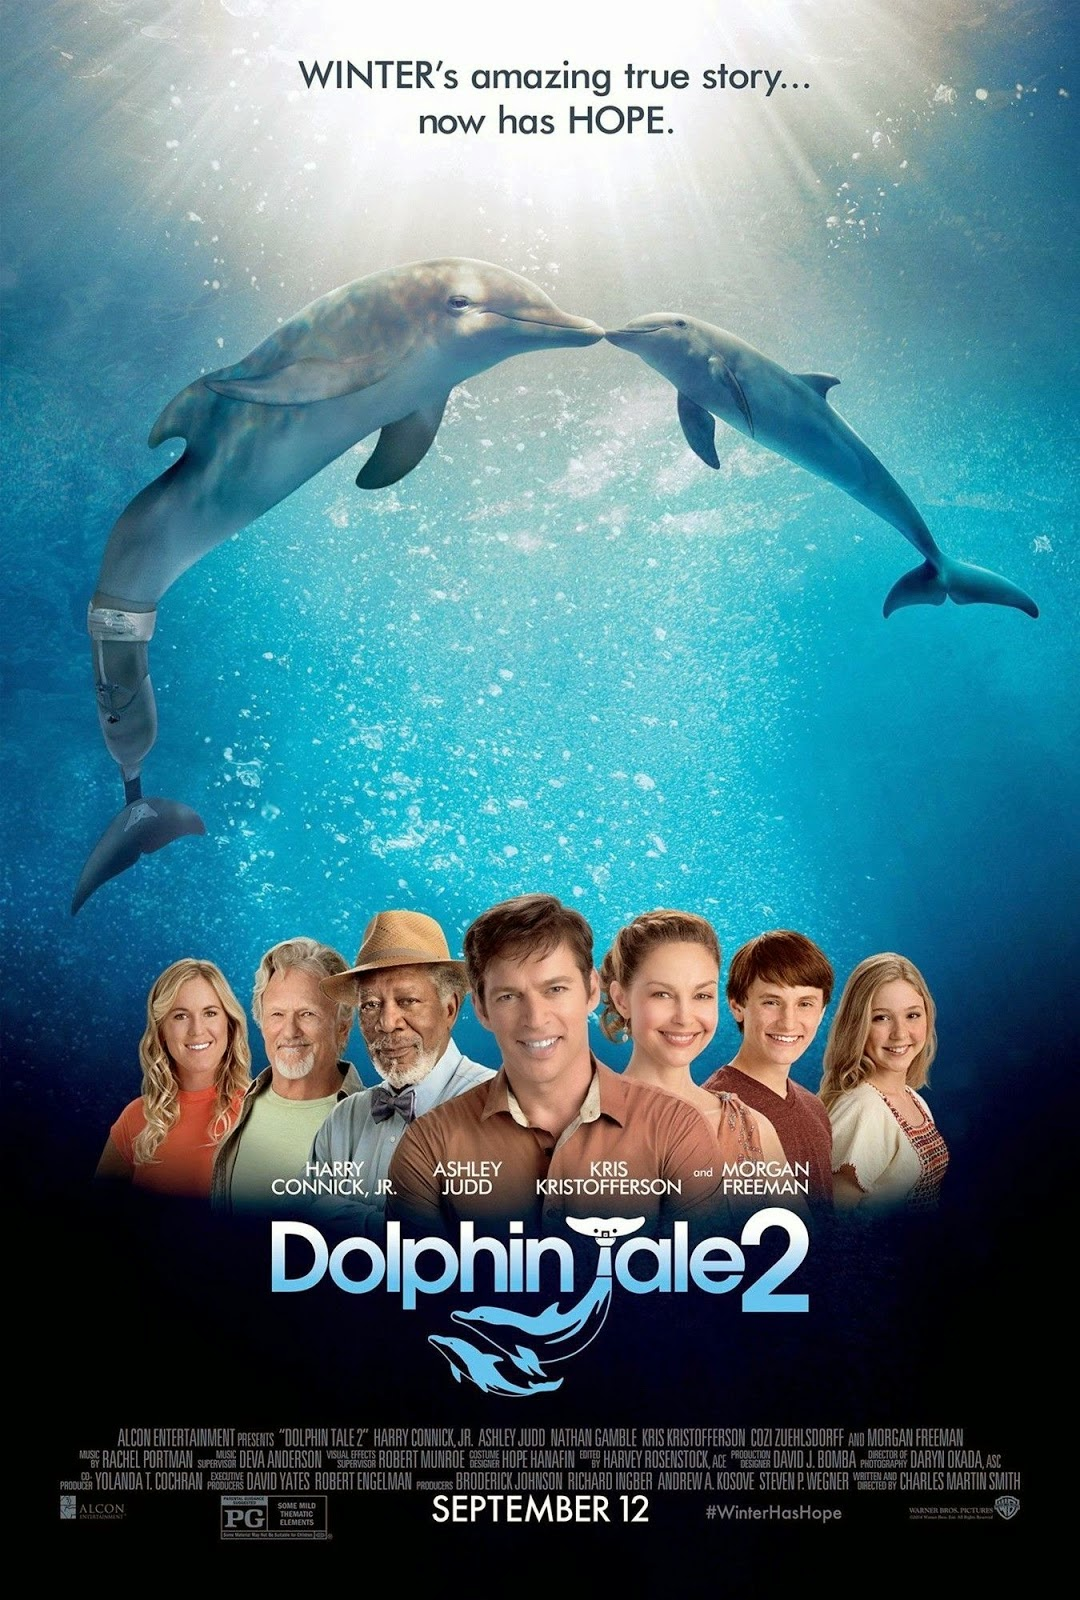 Dolphin Tale 2 Review The Film Gives Us Hope Sandwichjohnfilms